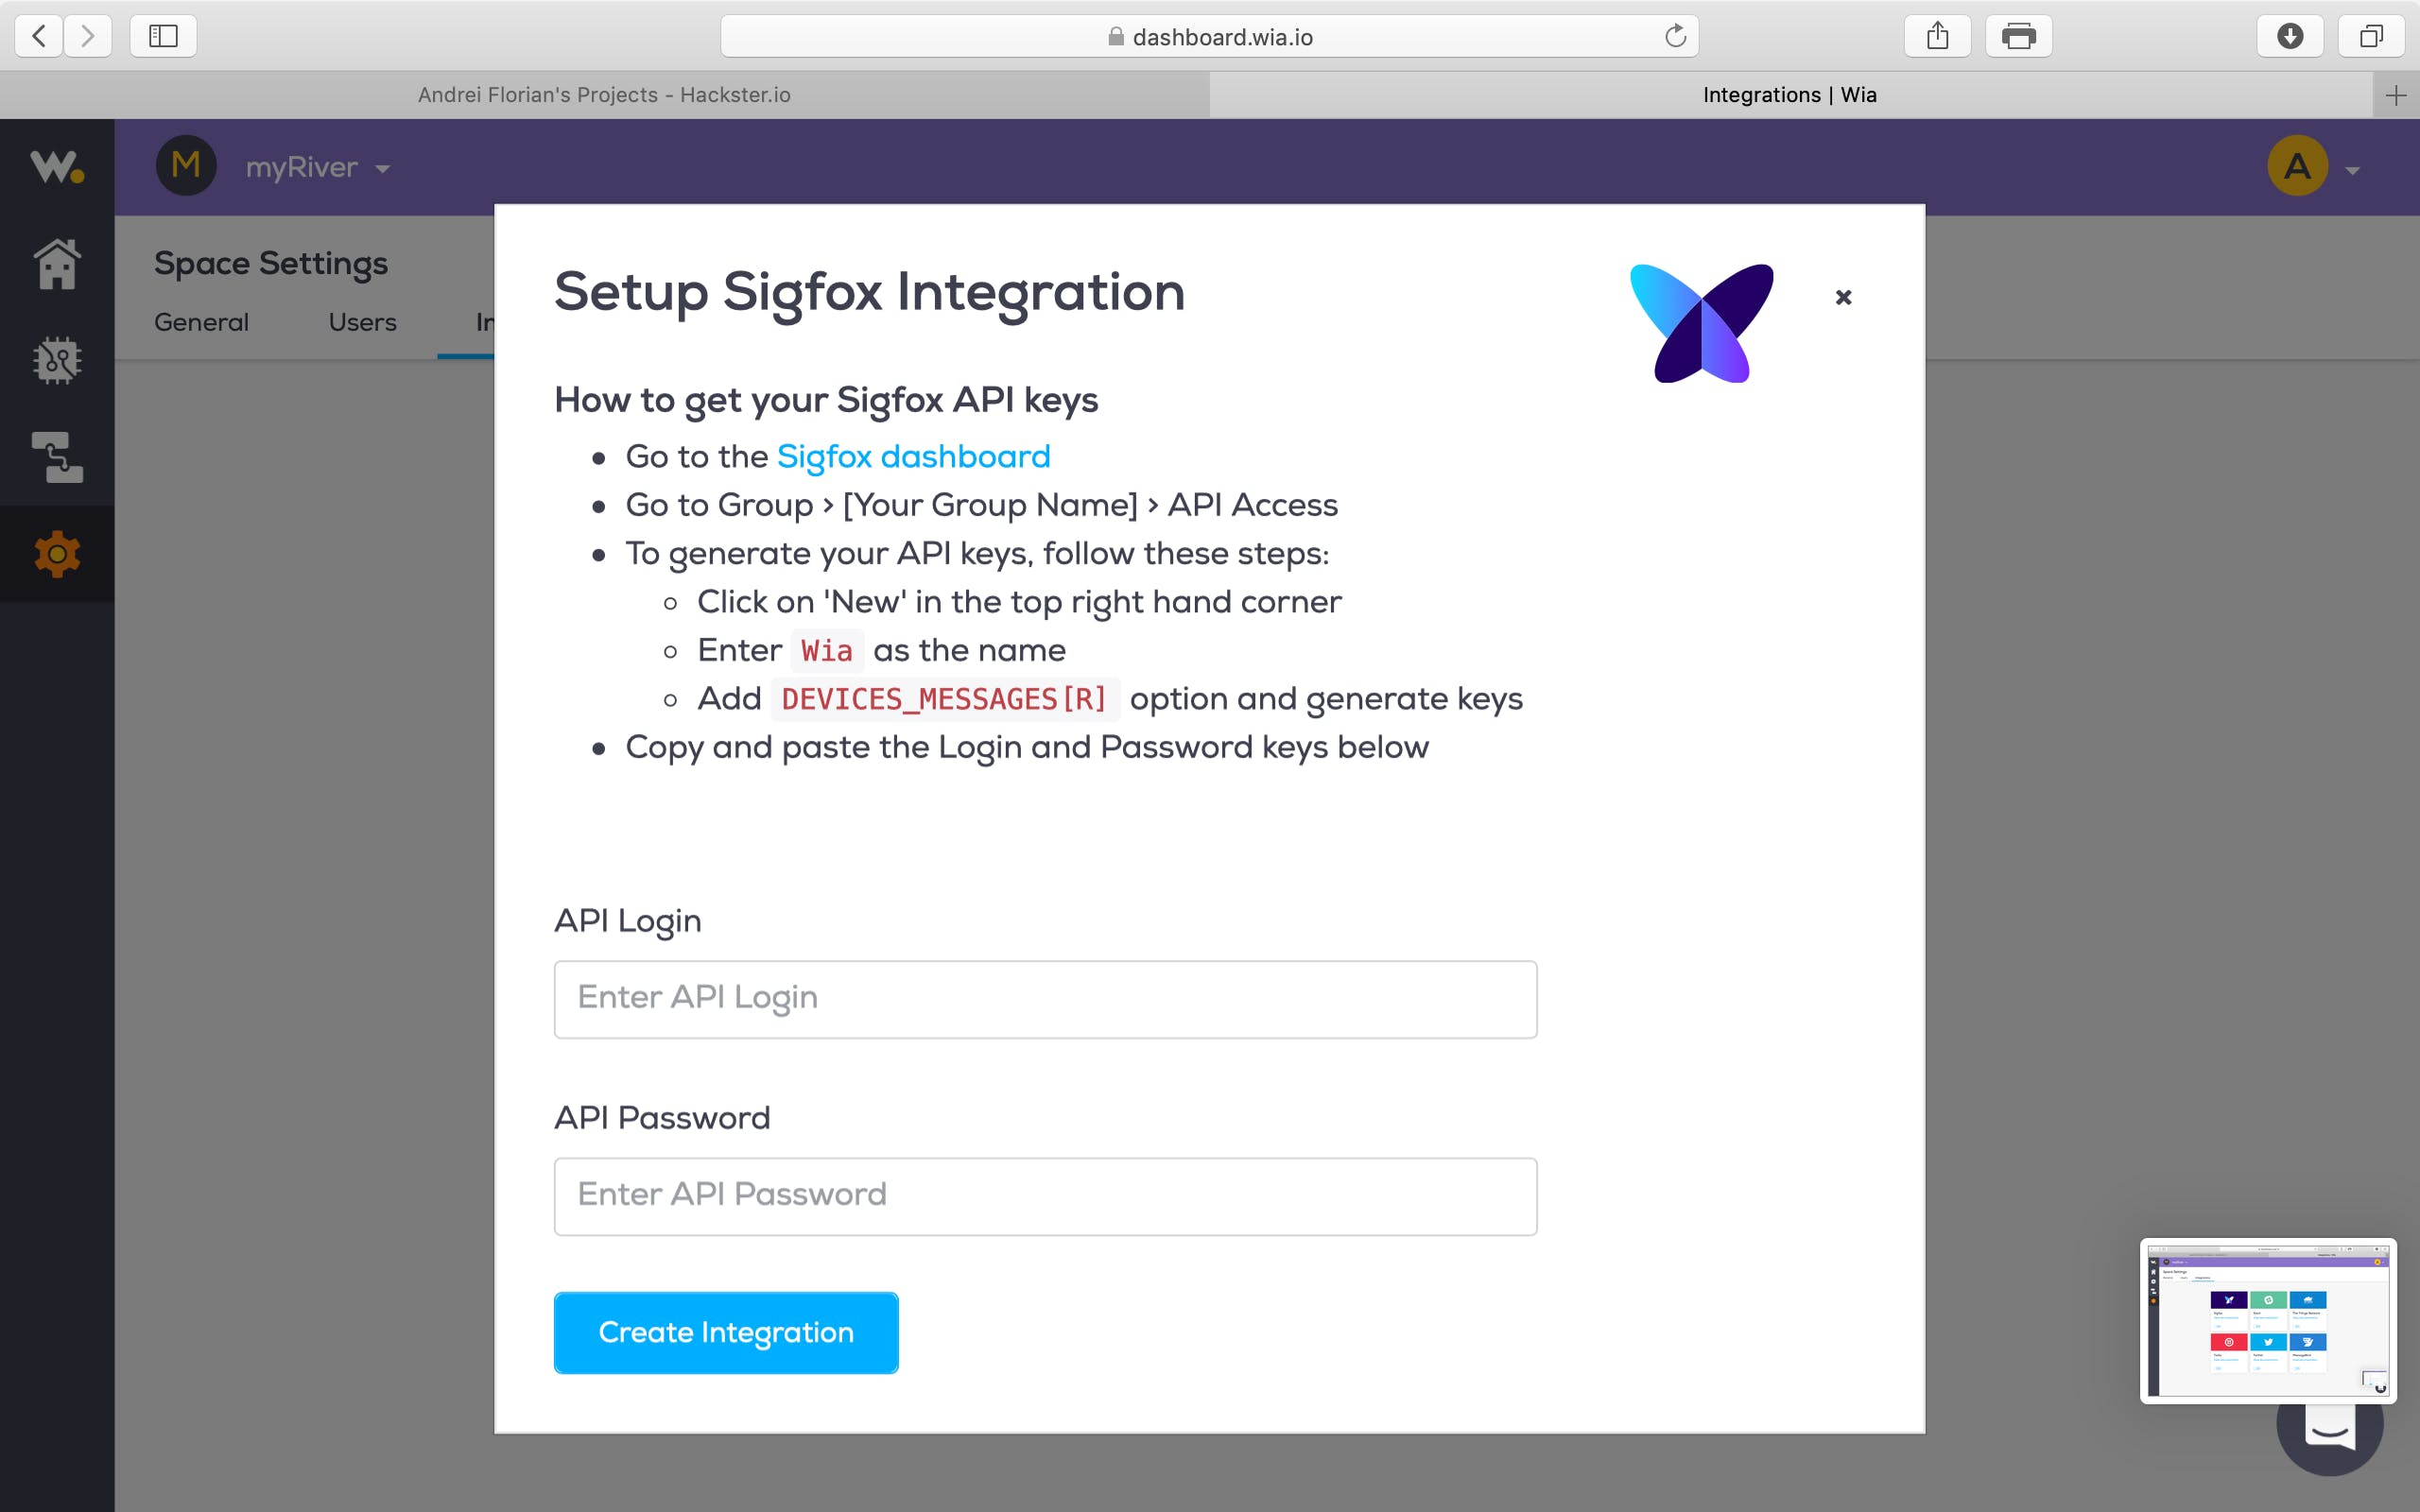 Now you will be redirected to the fallowing window, we will have to work with SigFox now